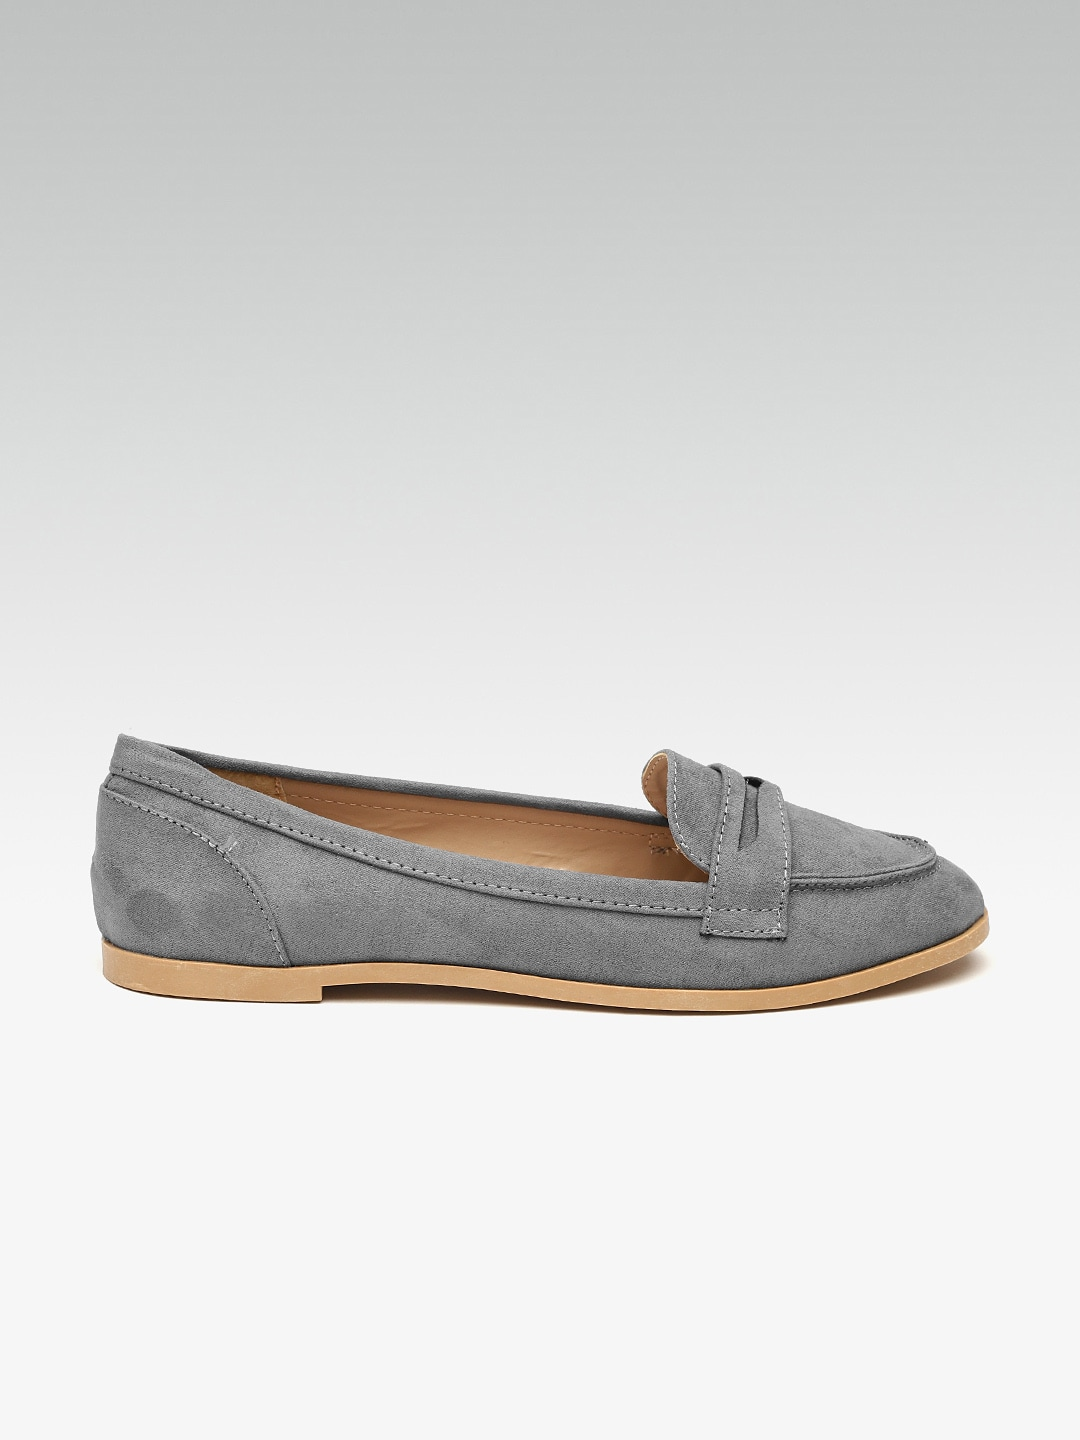 903dd668648 Dorothy Perkins - Buy Dorothy Perkins collection for women online - Myntra